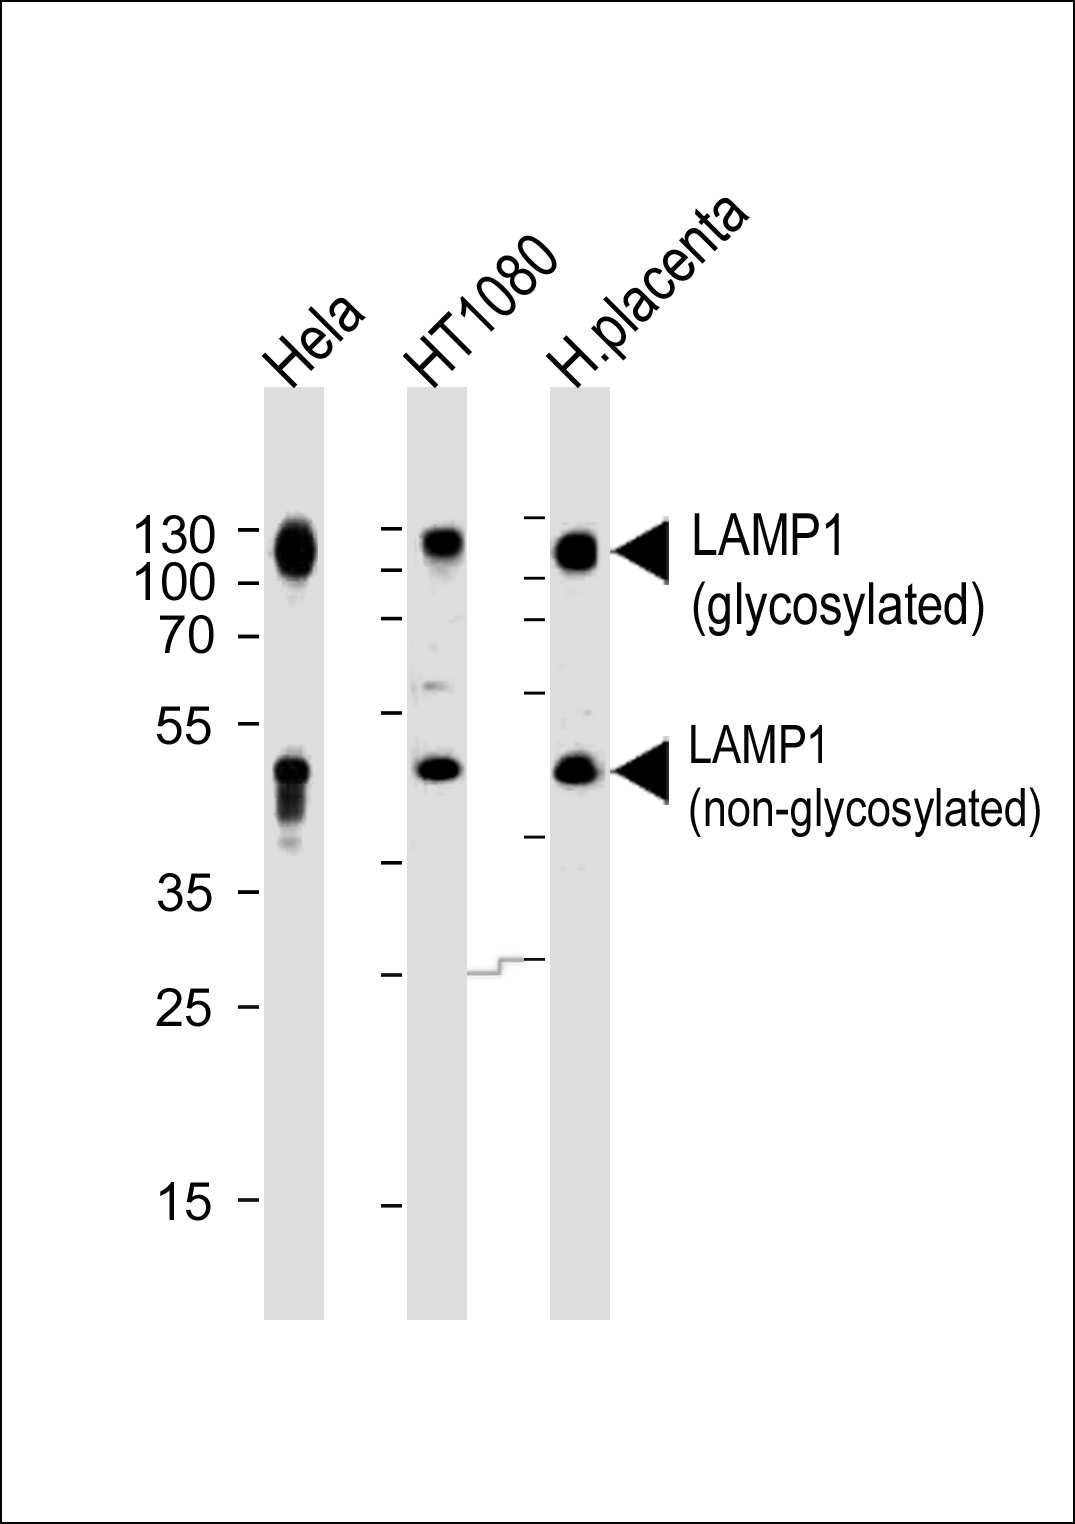 Western blot analysis of lysates from Hela,HT1080 cell line and human placenta tissue (from left to right),using LAMP1 Antibody (N-term). Anti-LAMP1 was diluted at 1:1000 at each lane. A goat anti-rabbit IgG H&L (HRP) at 1:5000 dilution was used as the secondary antibody. Lysates at 35ug per lane.